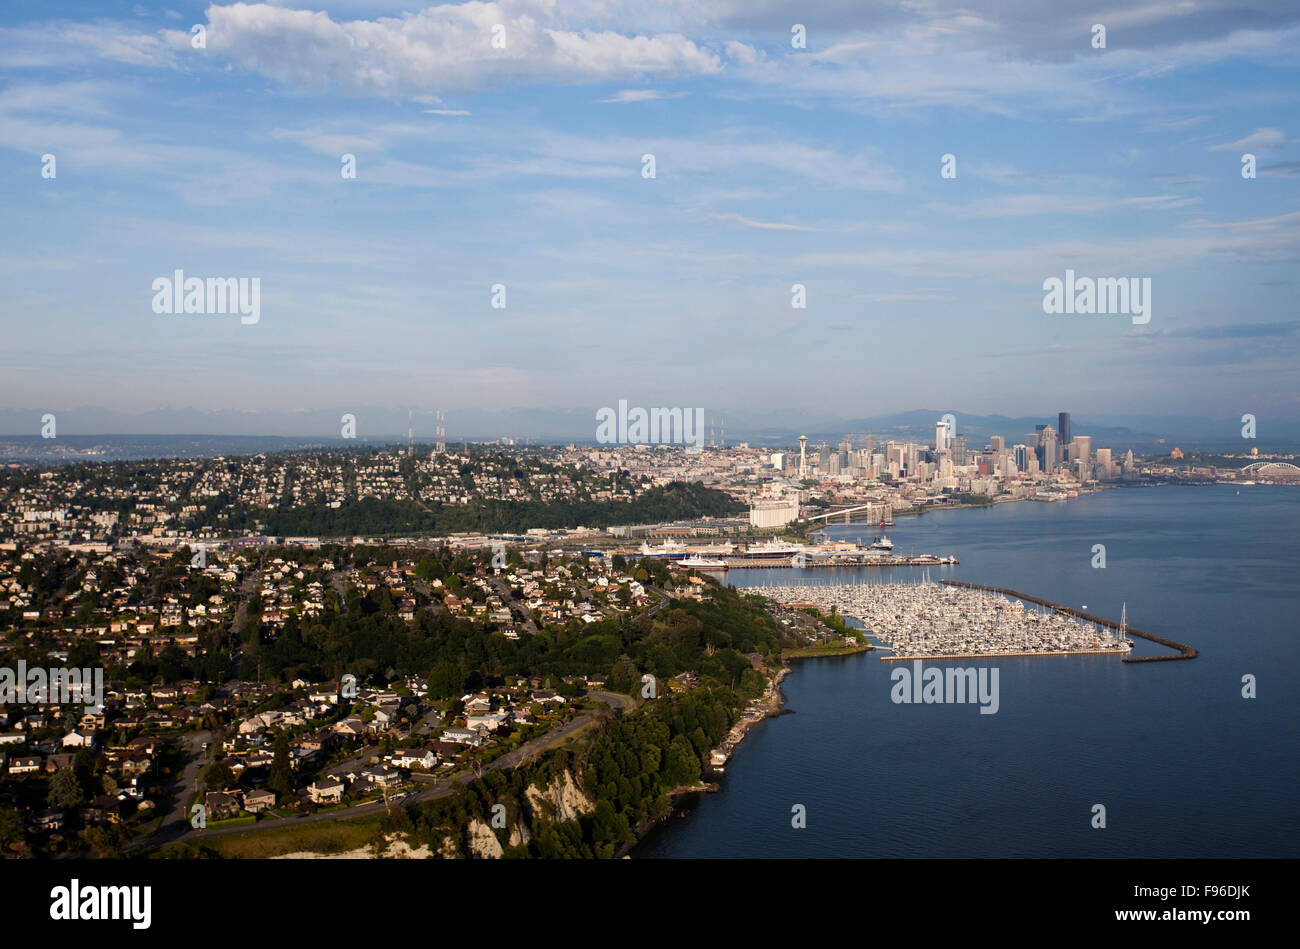 Aerial views of two stadiums in downtown Seattle - Stock Image